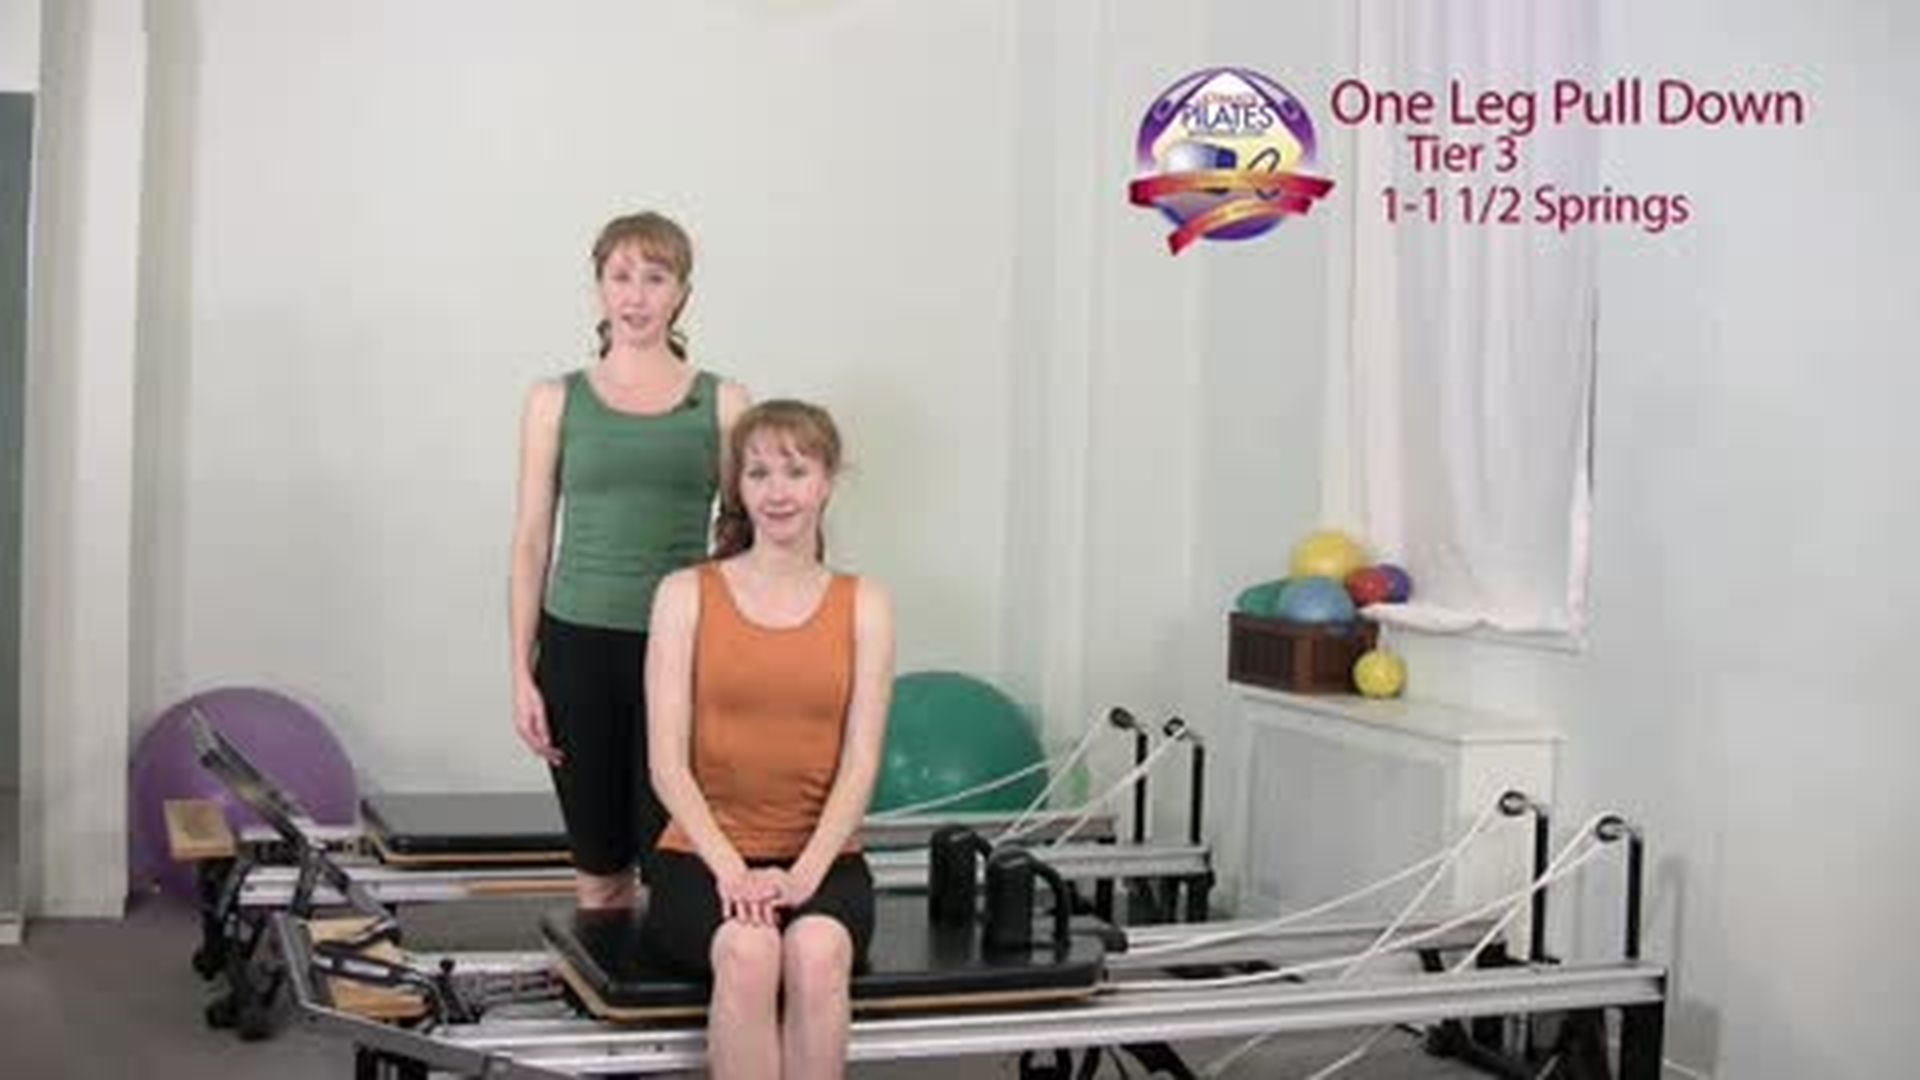 One Leg Pull Down Supine